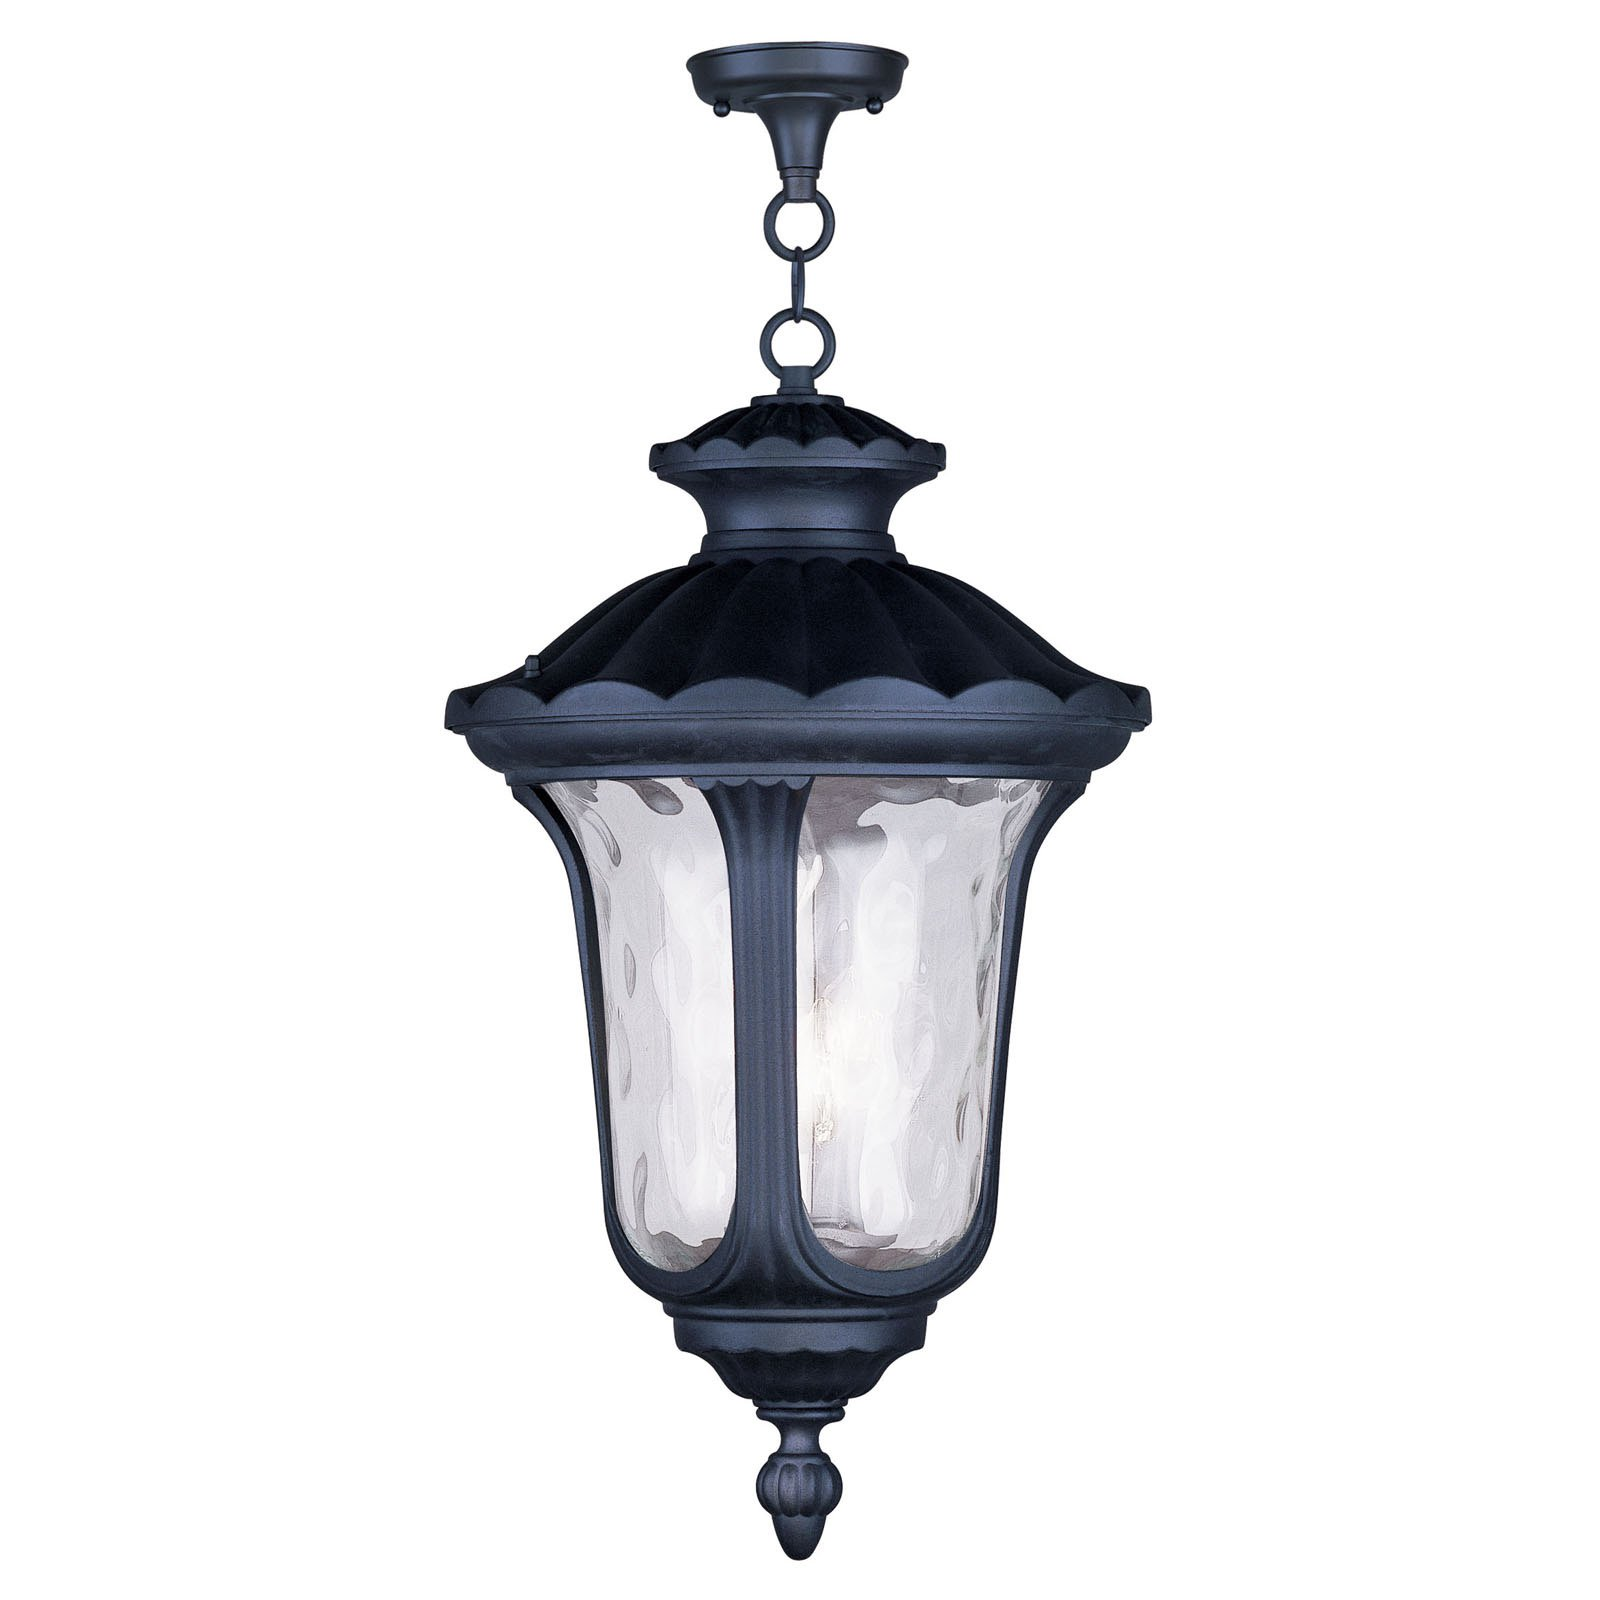 Livex Oxford 7865-04 Outdoor Hanging Lantern by Livex Lighting